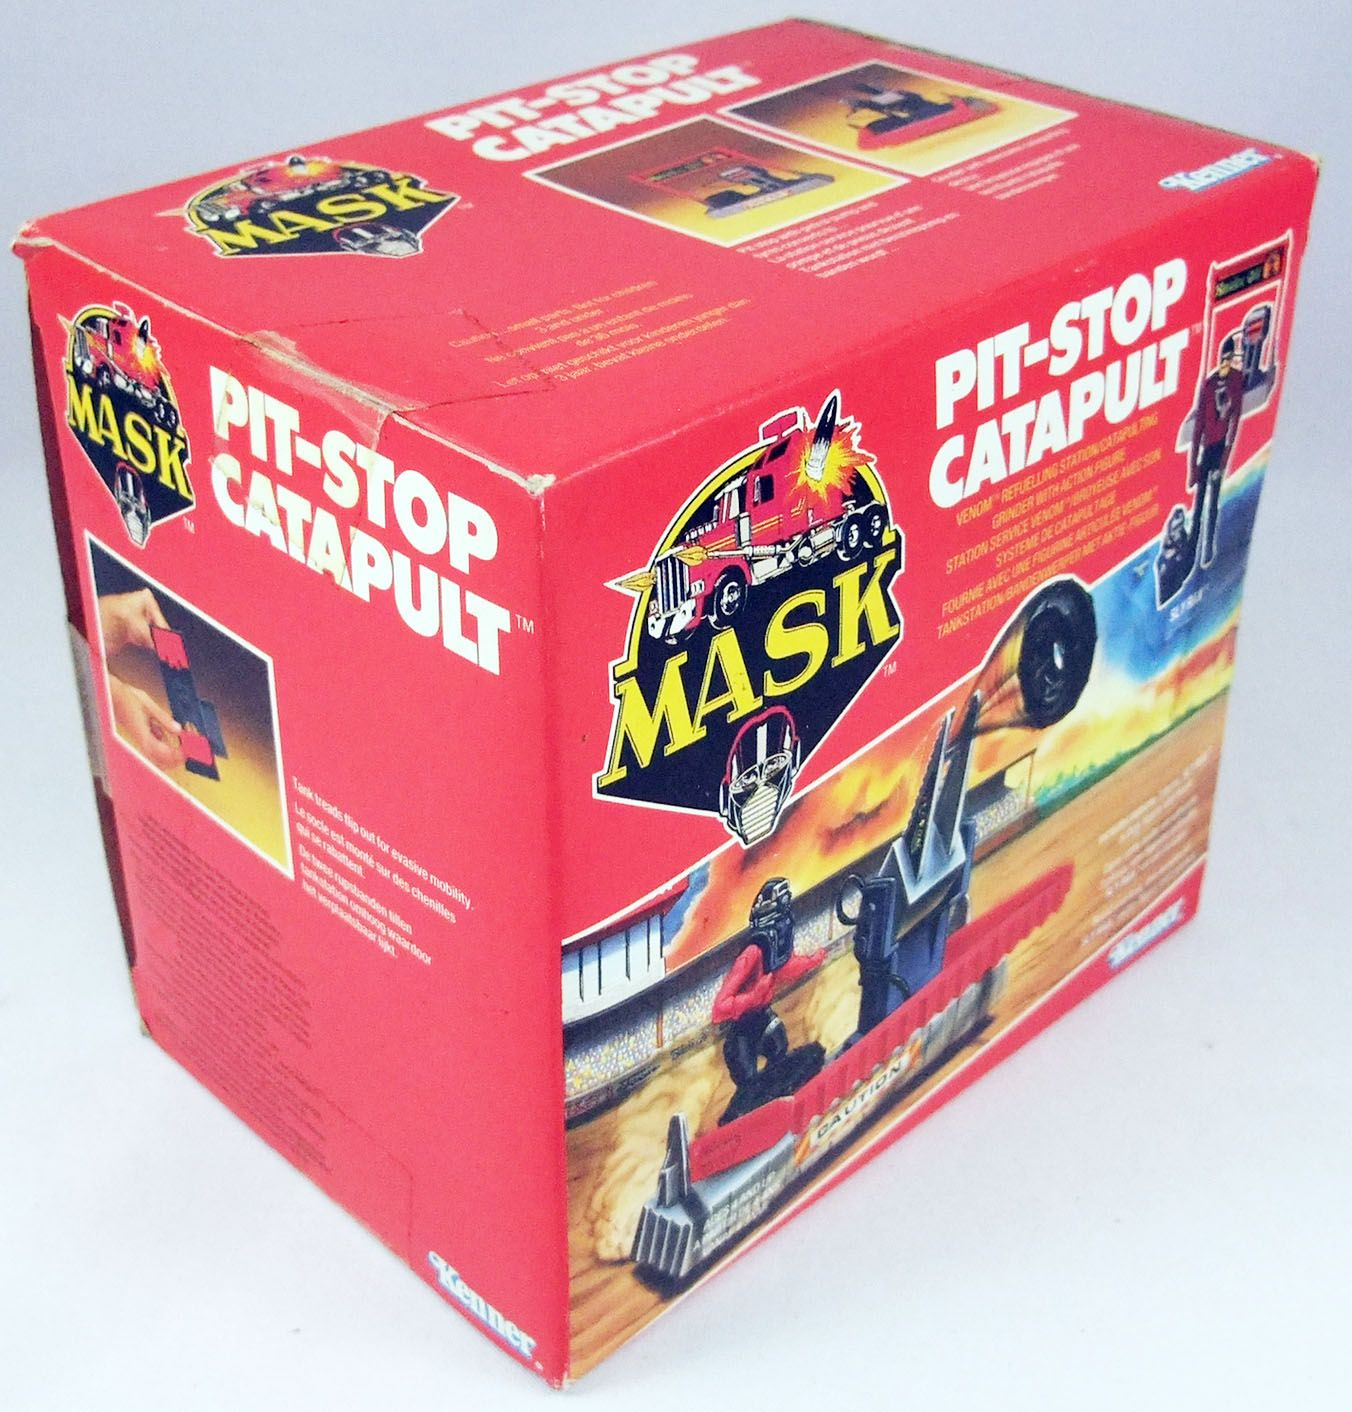 M.A.S.K. - Pit-Stop Catapult avec Sly Rax (Europe)